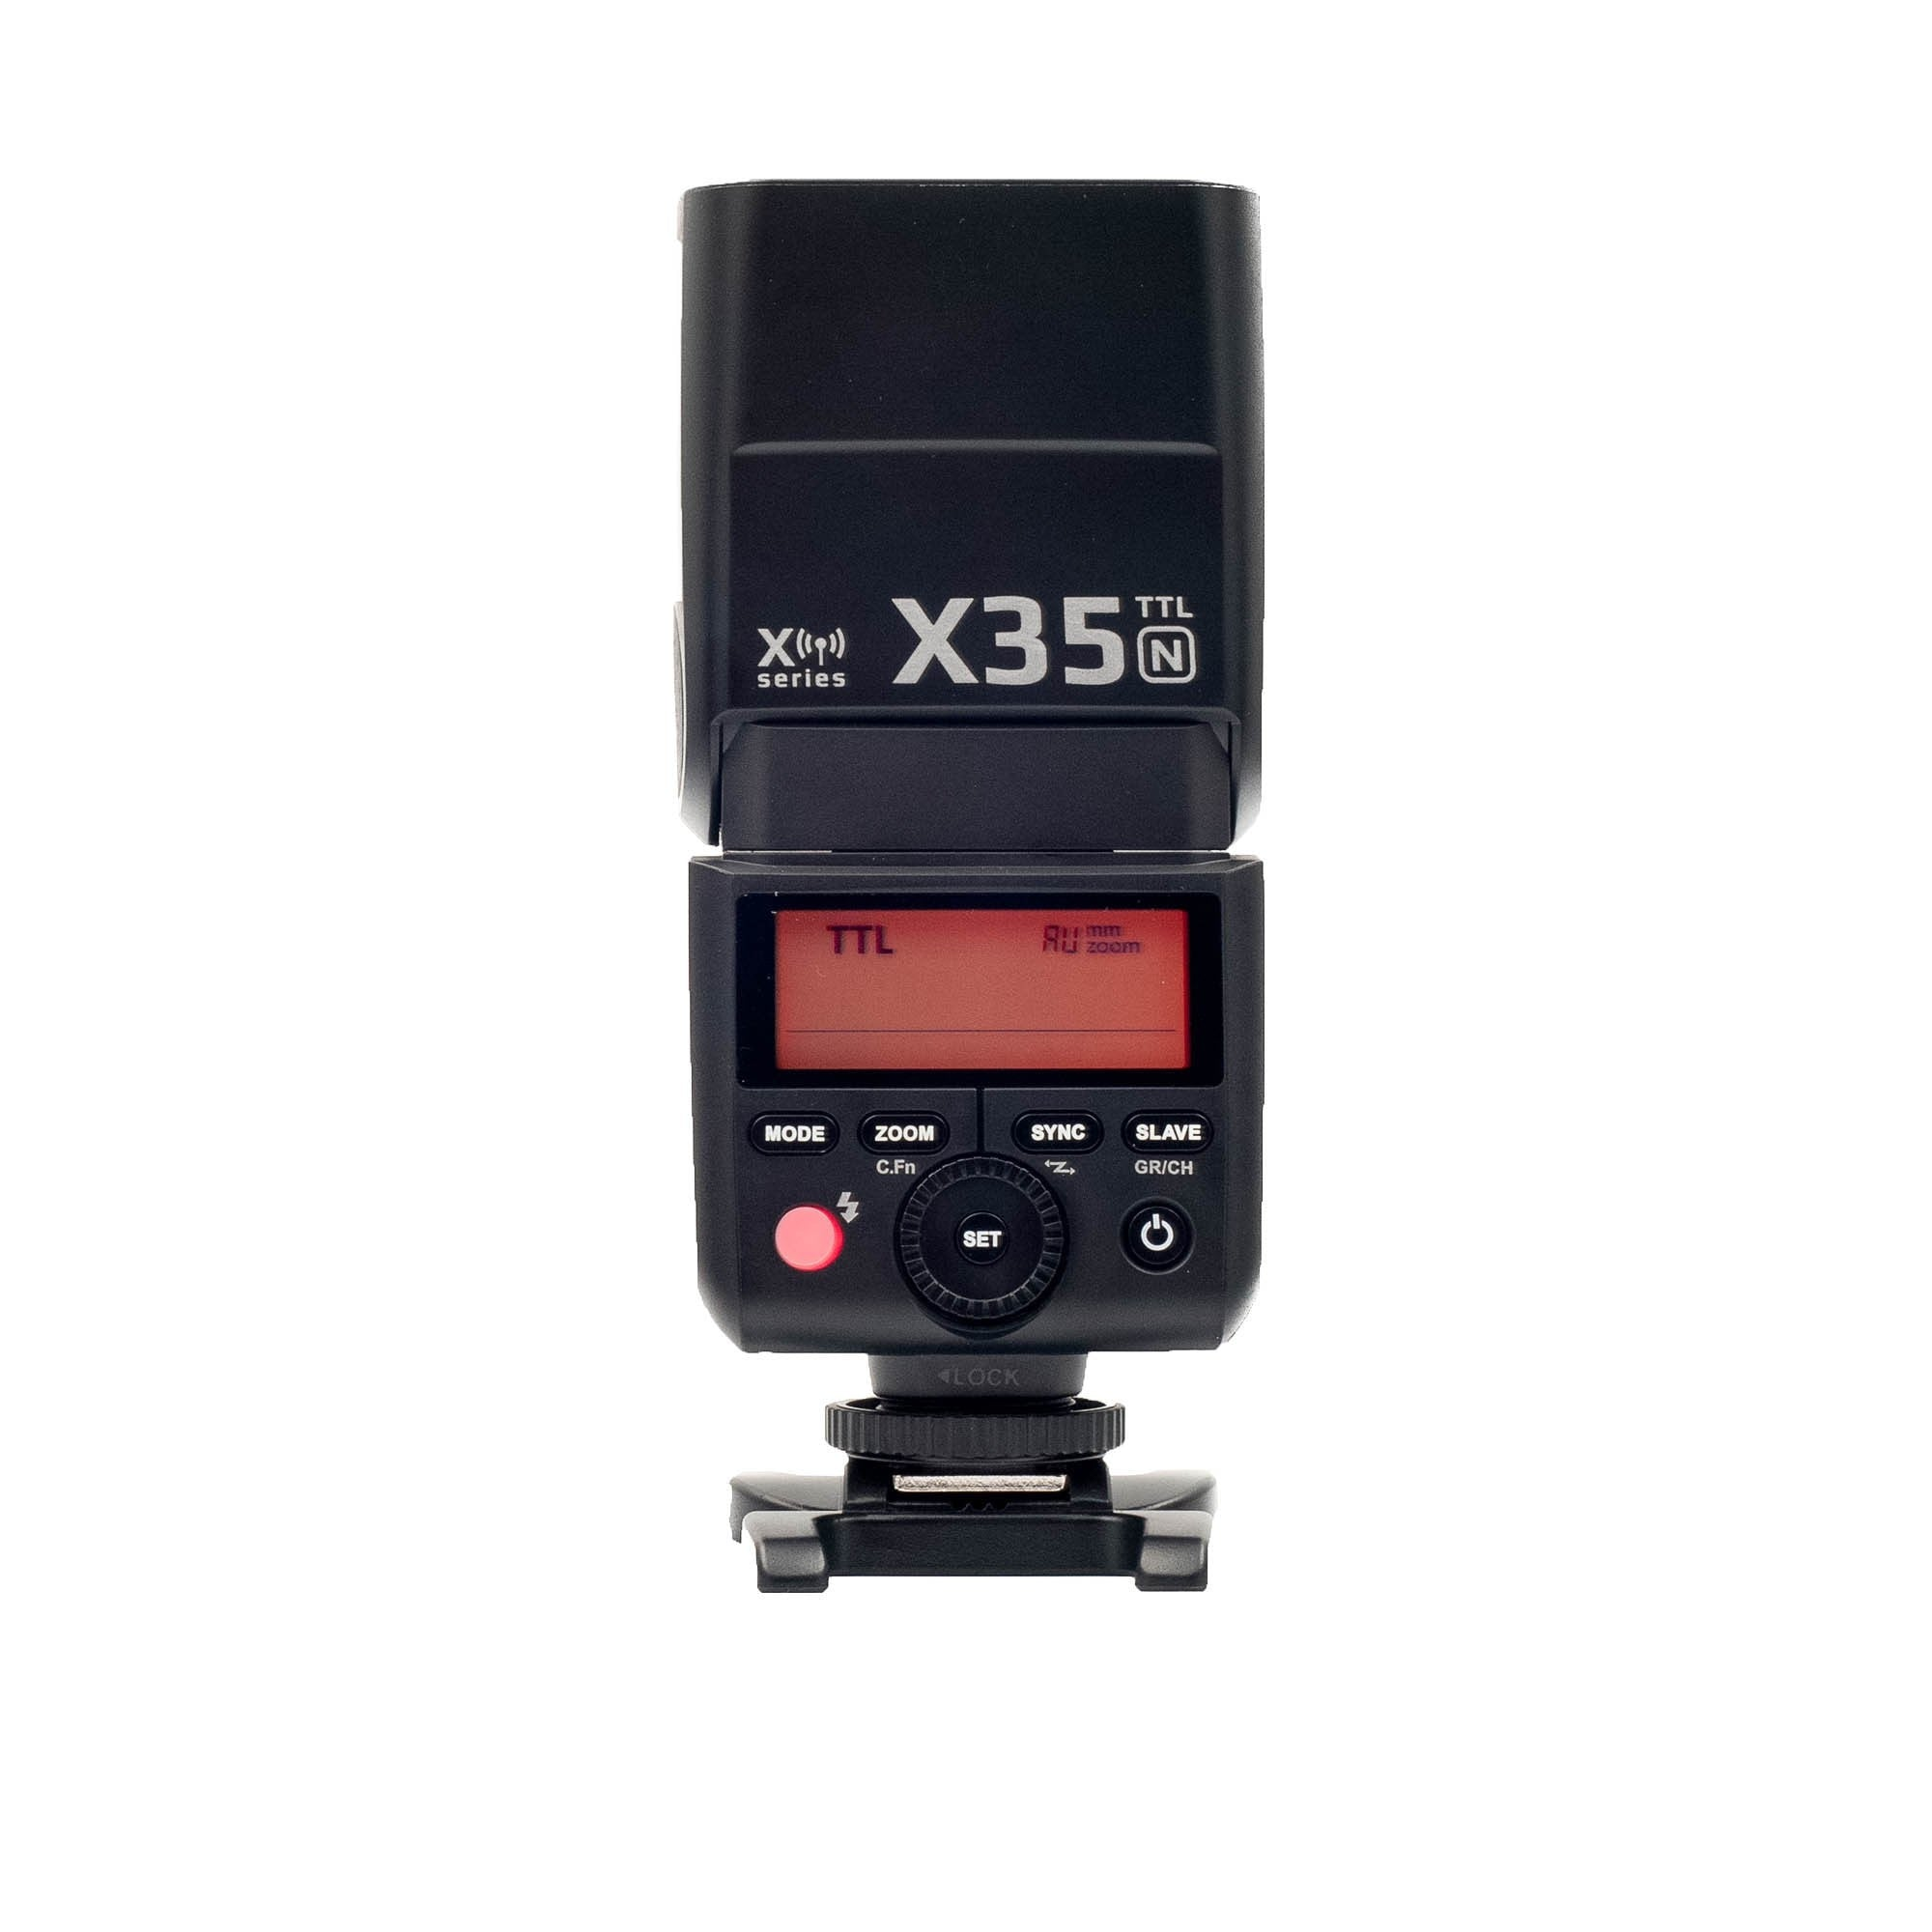 Strobepro X35N (Godox TT350N) TTL Mini Wireless Speedlite Flash - Nikon - Strobepro Studio Lighting